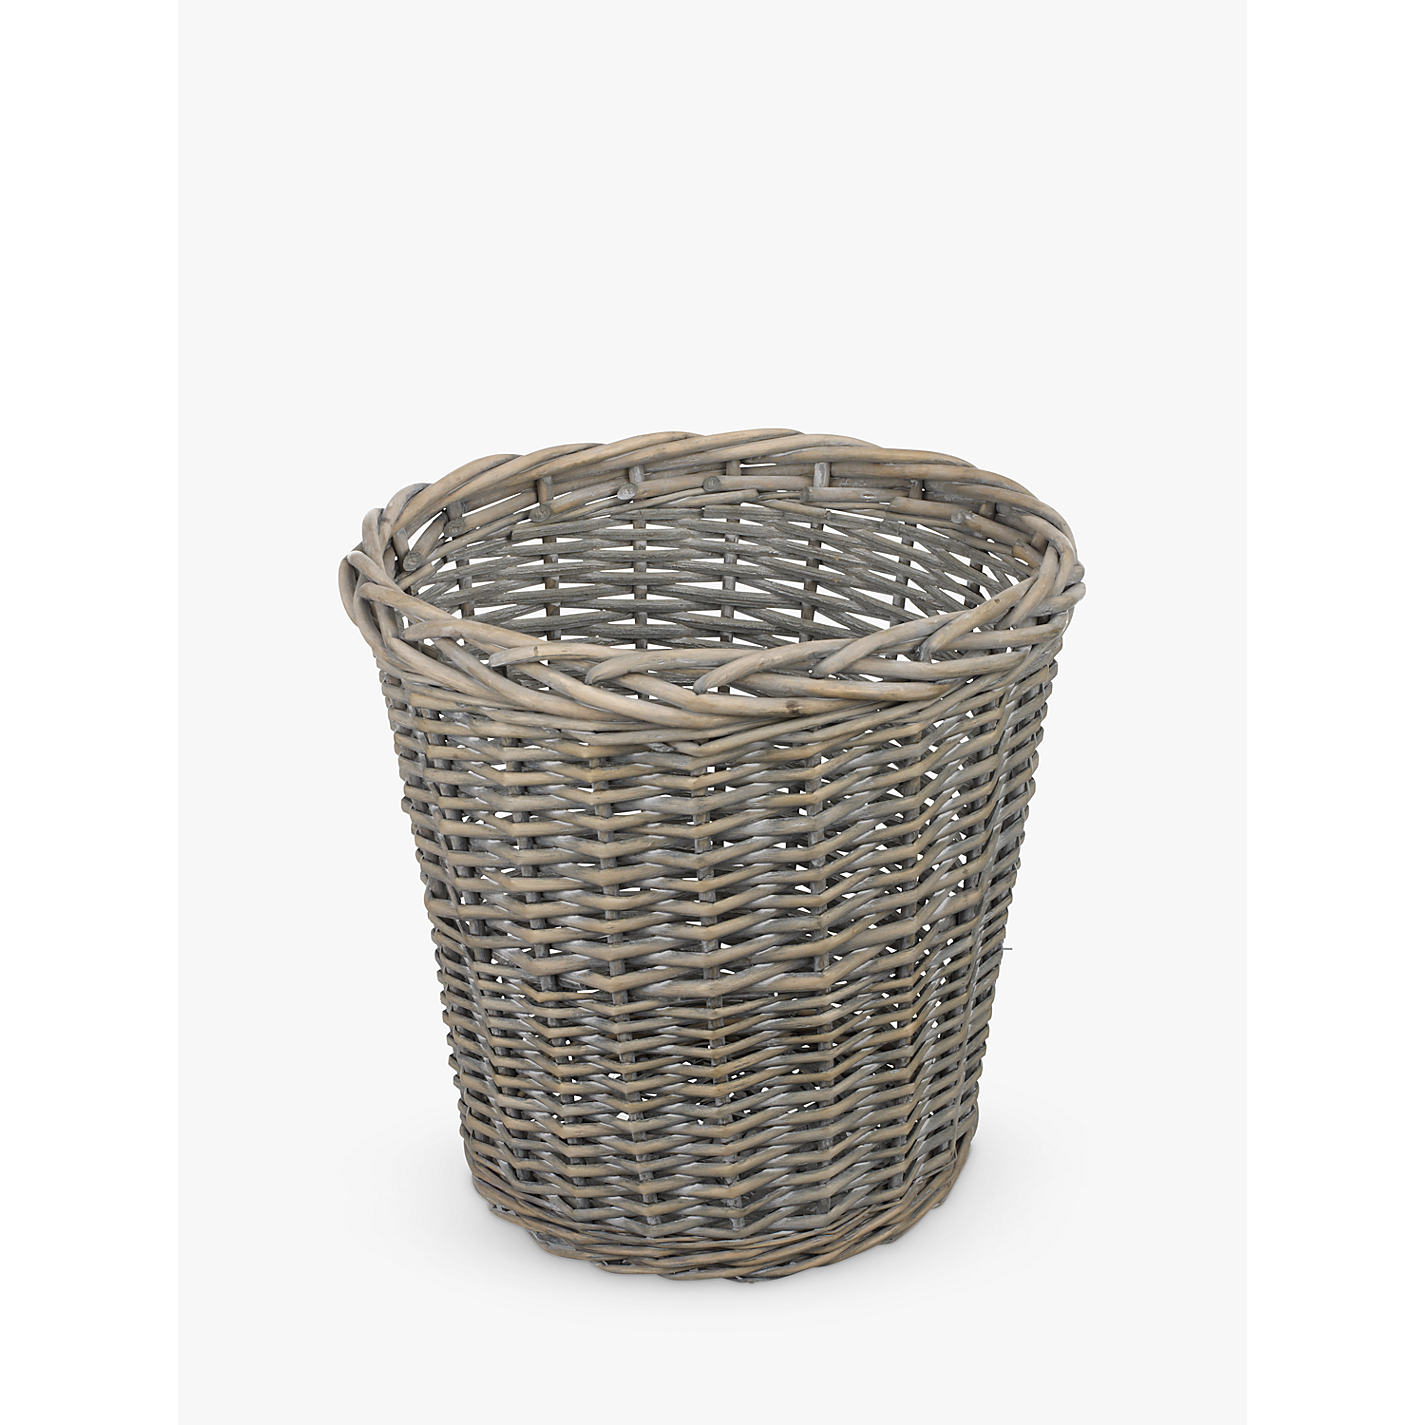 Wastepaper Basket Unique Buy John Lewis Wicker Wastepaper Bin Grey Wash  John Lewis Decorating Inspiration